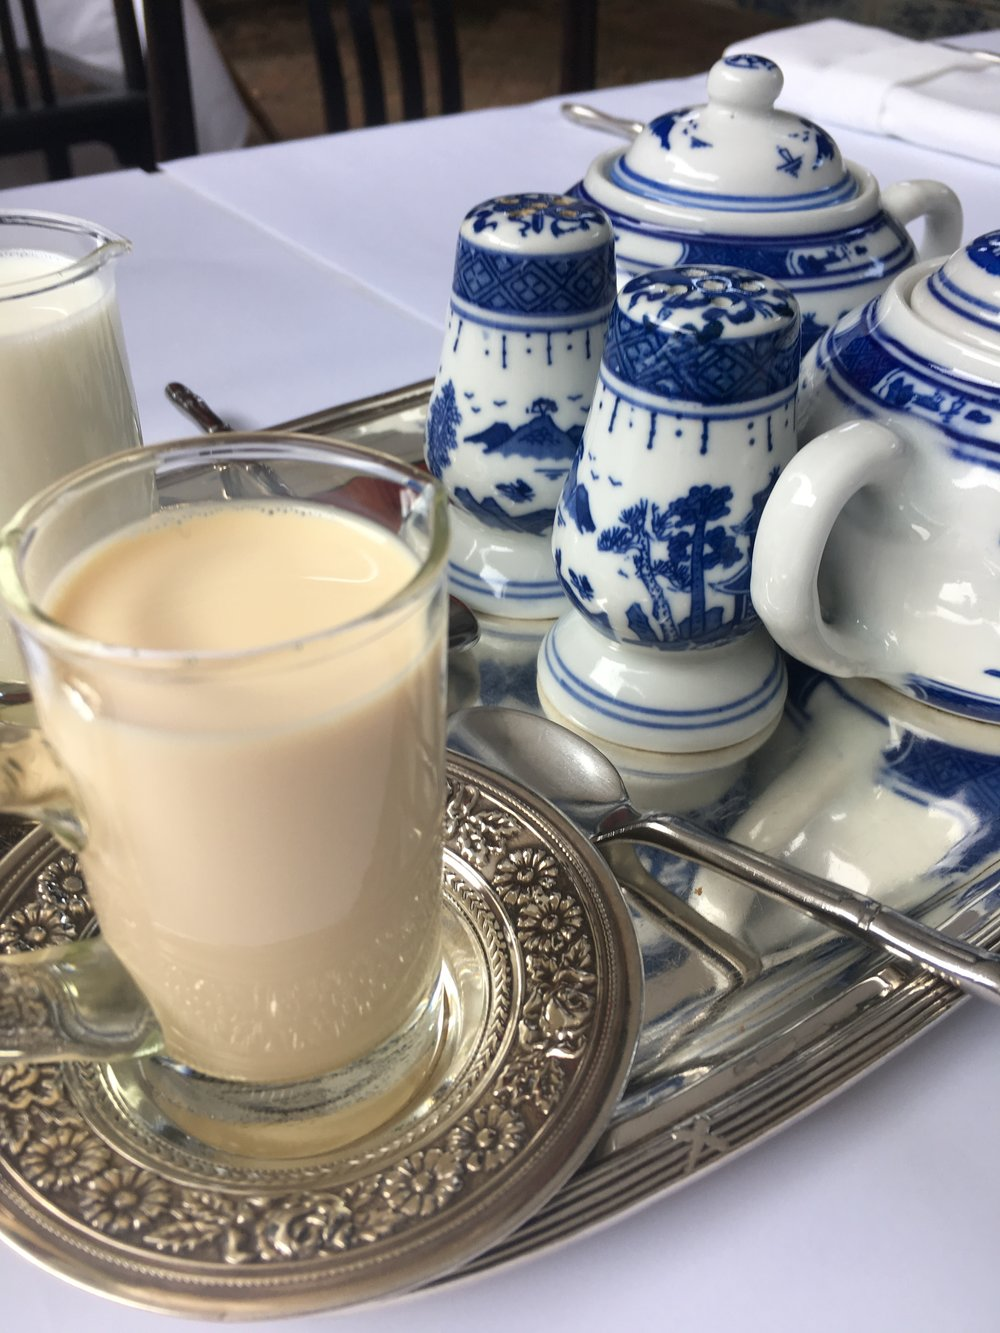 Delicate hand painted china, crisp linens, sliver serving trays from Laos, and thick cream for your rich coffee welcome you at breakfast to help jump start your day of adventure.